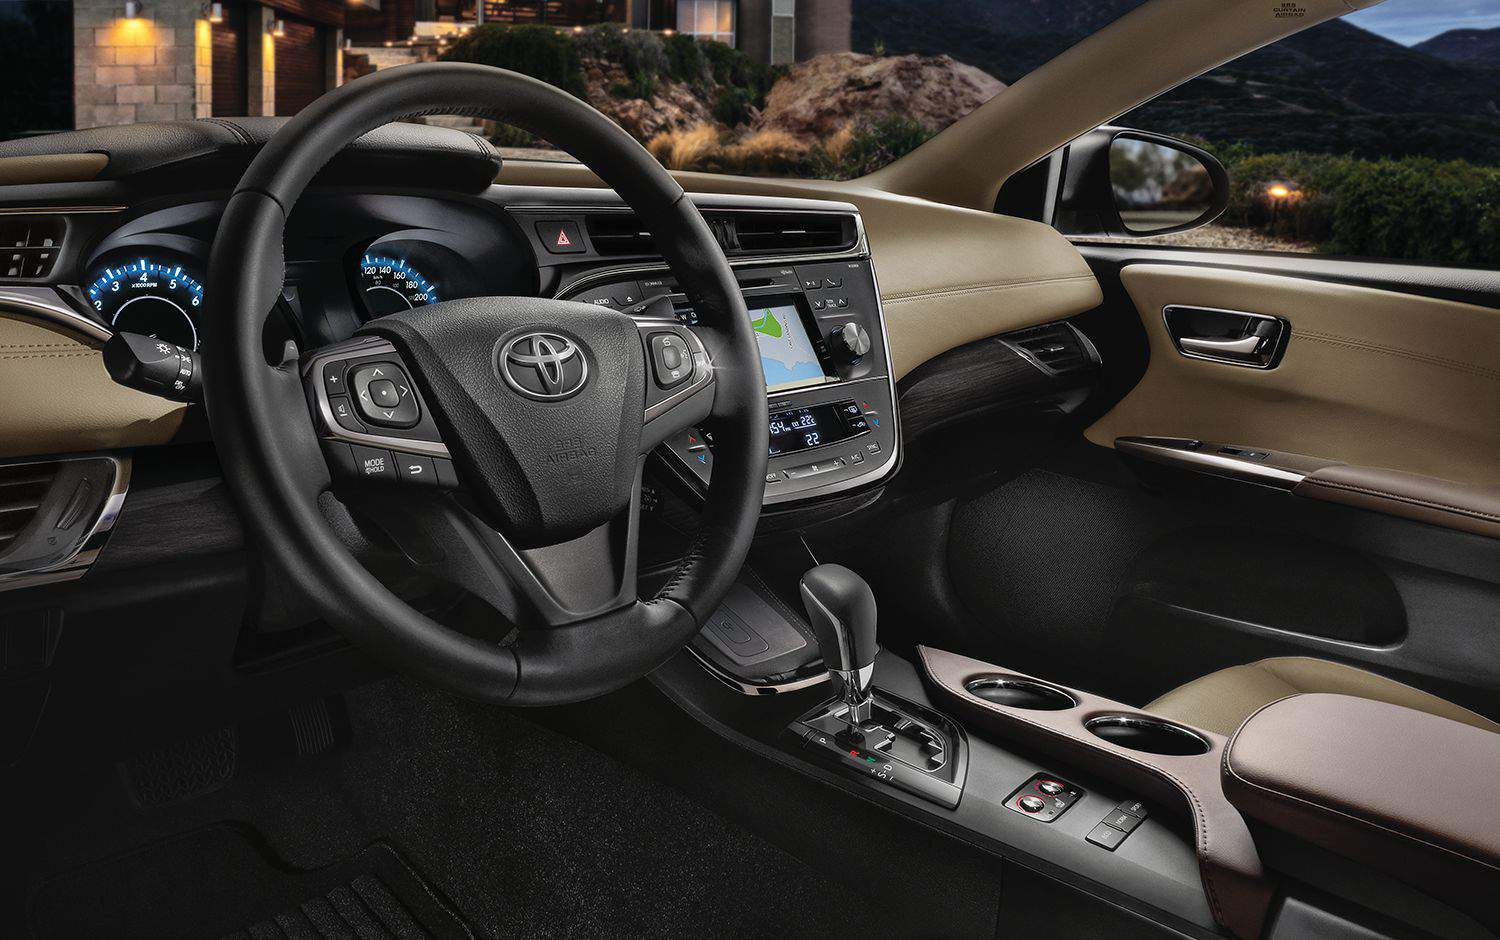 2018 Toyota Avalon Interior Dashboard